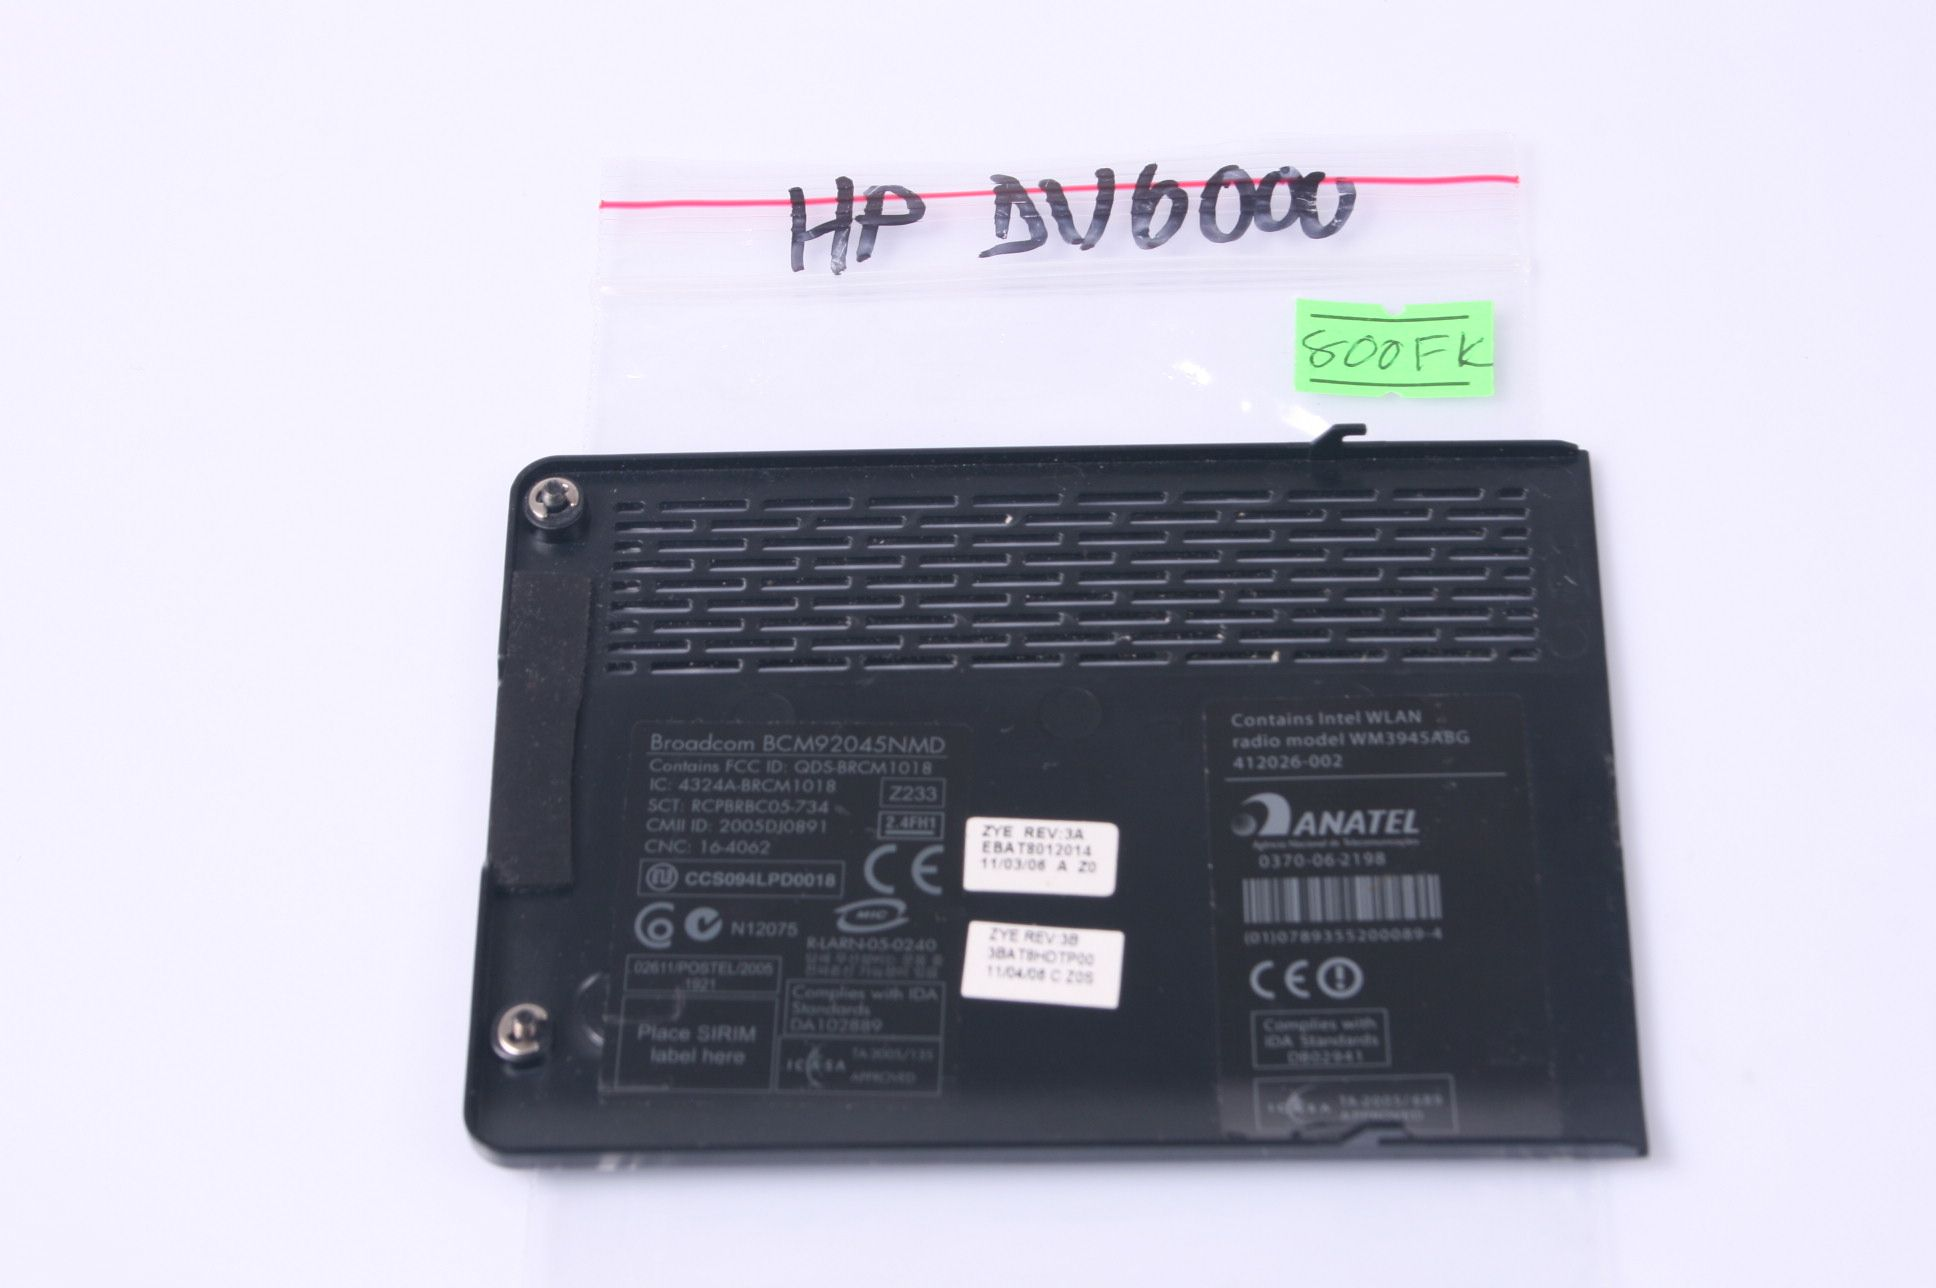 HP PAVILION DV6000 Hard Drive Cover Door 412026-002